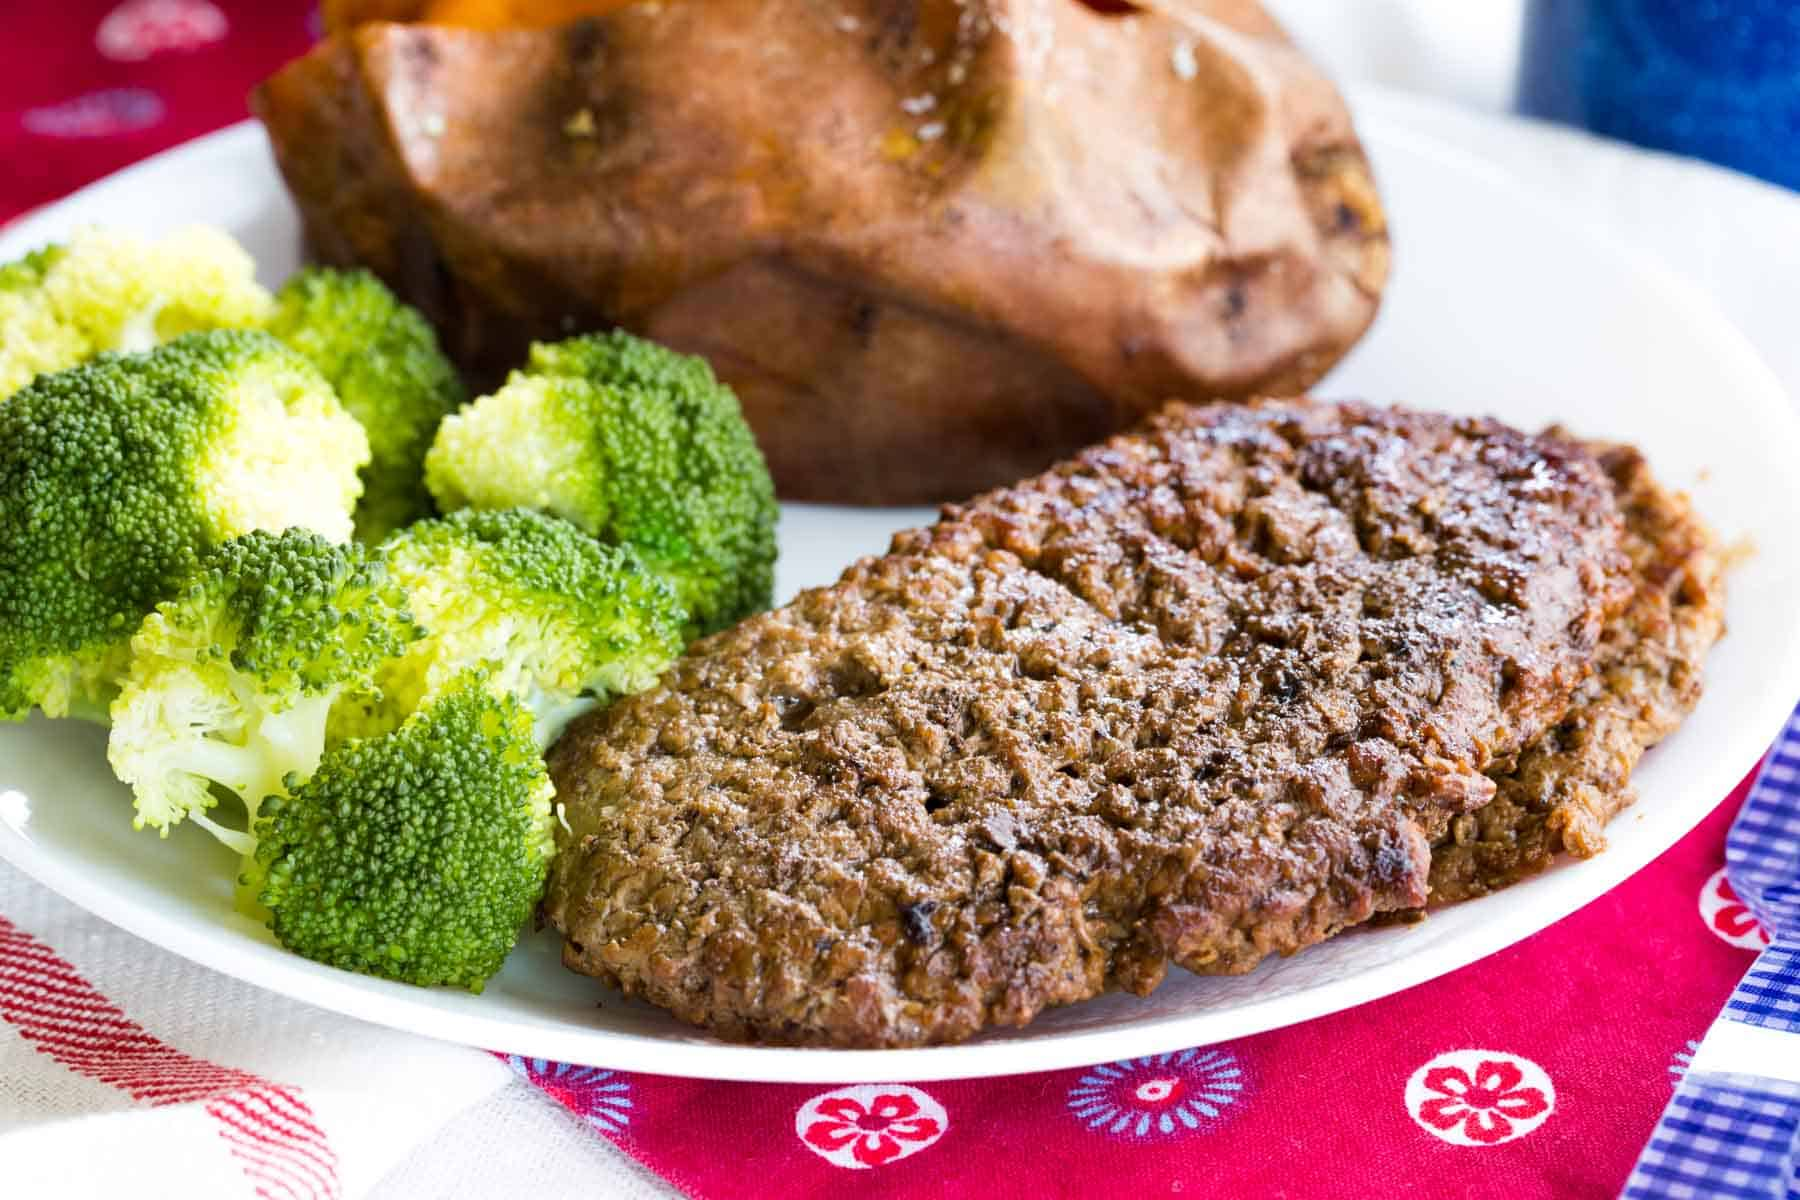 Worcestershire Sauce Cast Iron Cubed Steaks served with sweet potatoes and broccoli